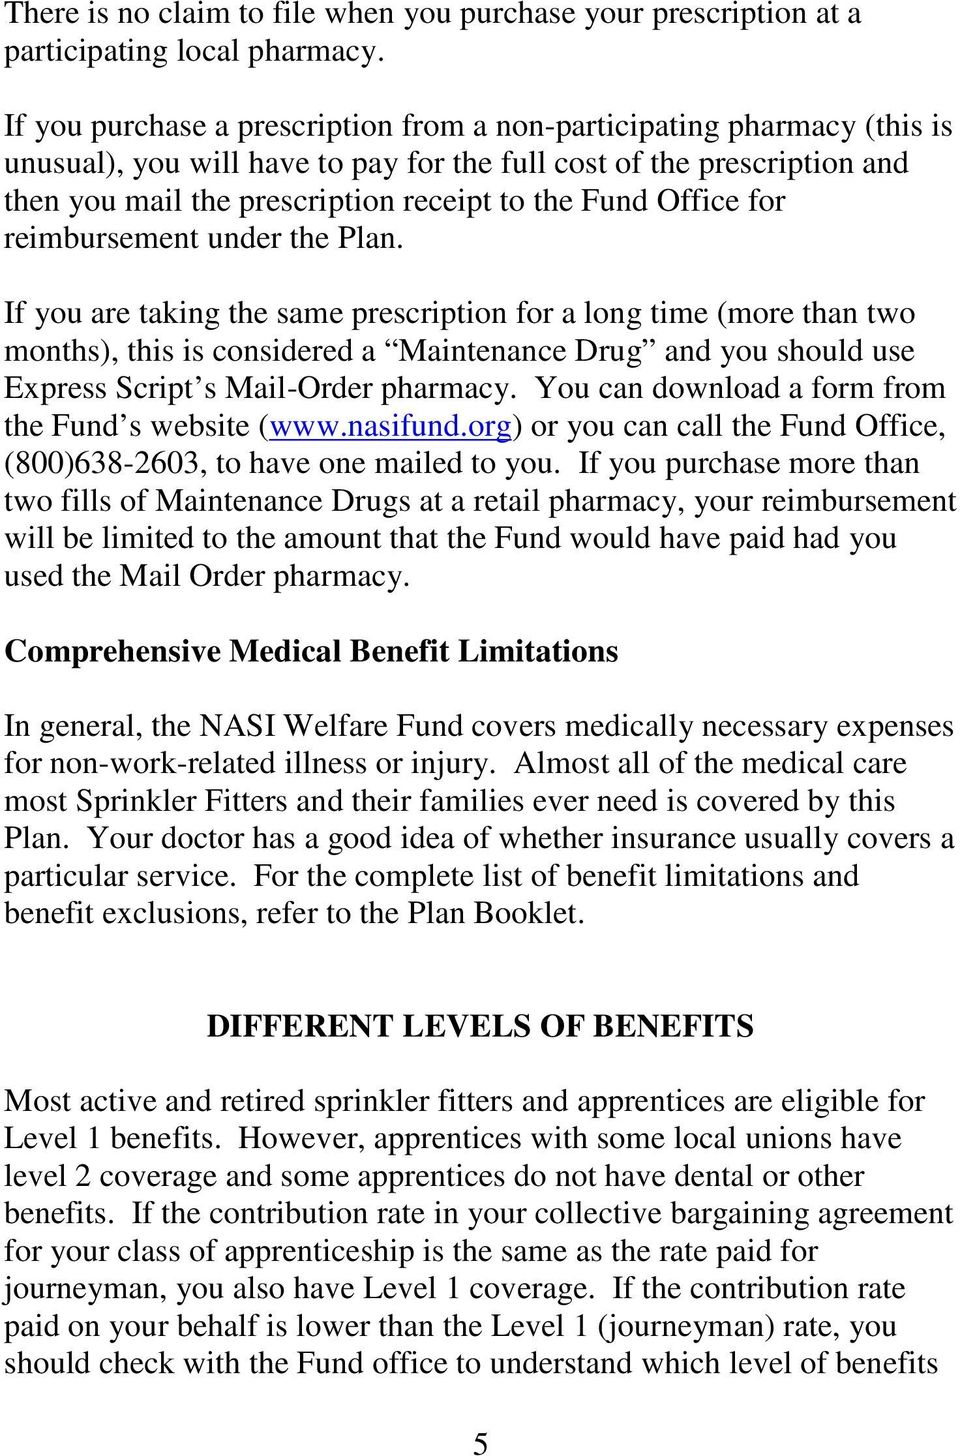 Office for reimbursement under the Plan.